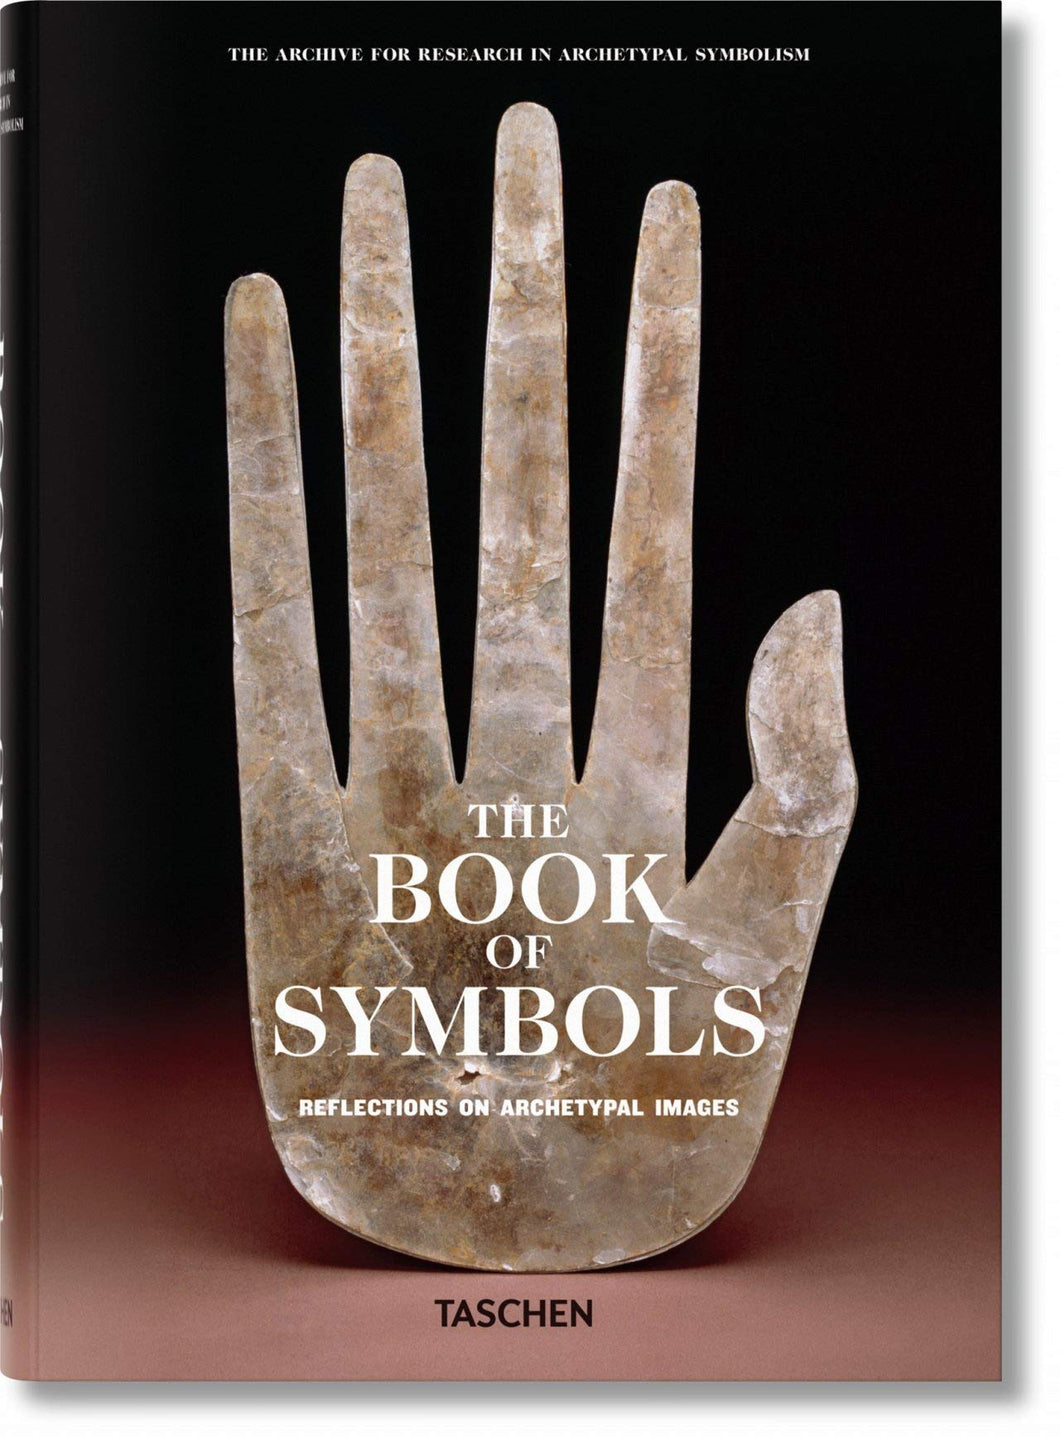 The Book of Symbols: Reflections on Archetypal Images by Archive for Research in Archetypal Symbolism (ARAS)